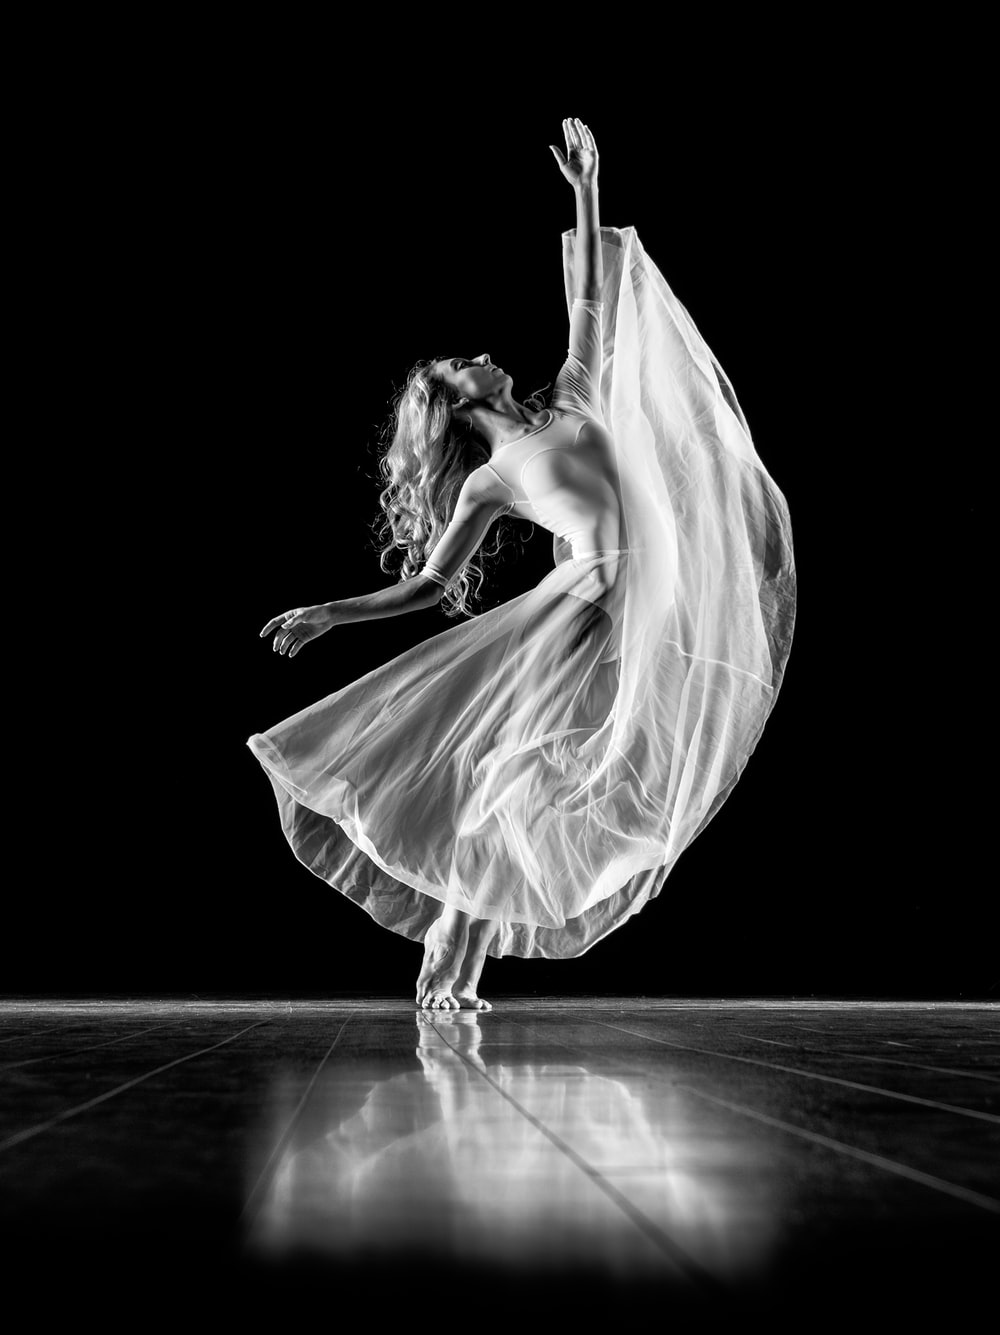 500 dancer pictures hd download free images on unsplash